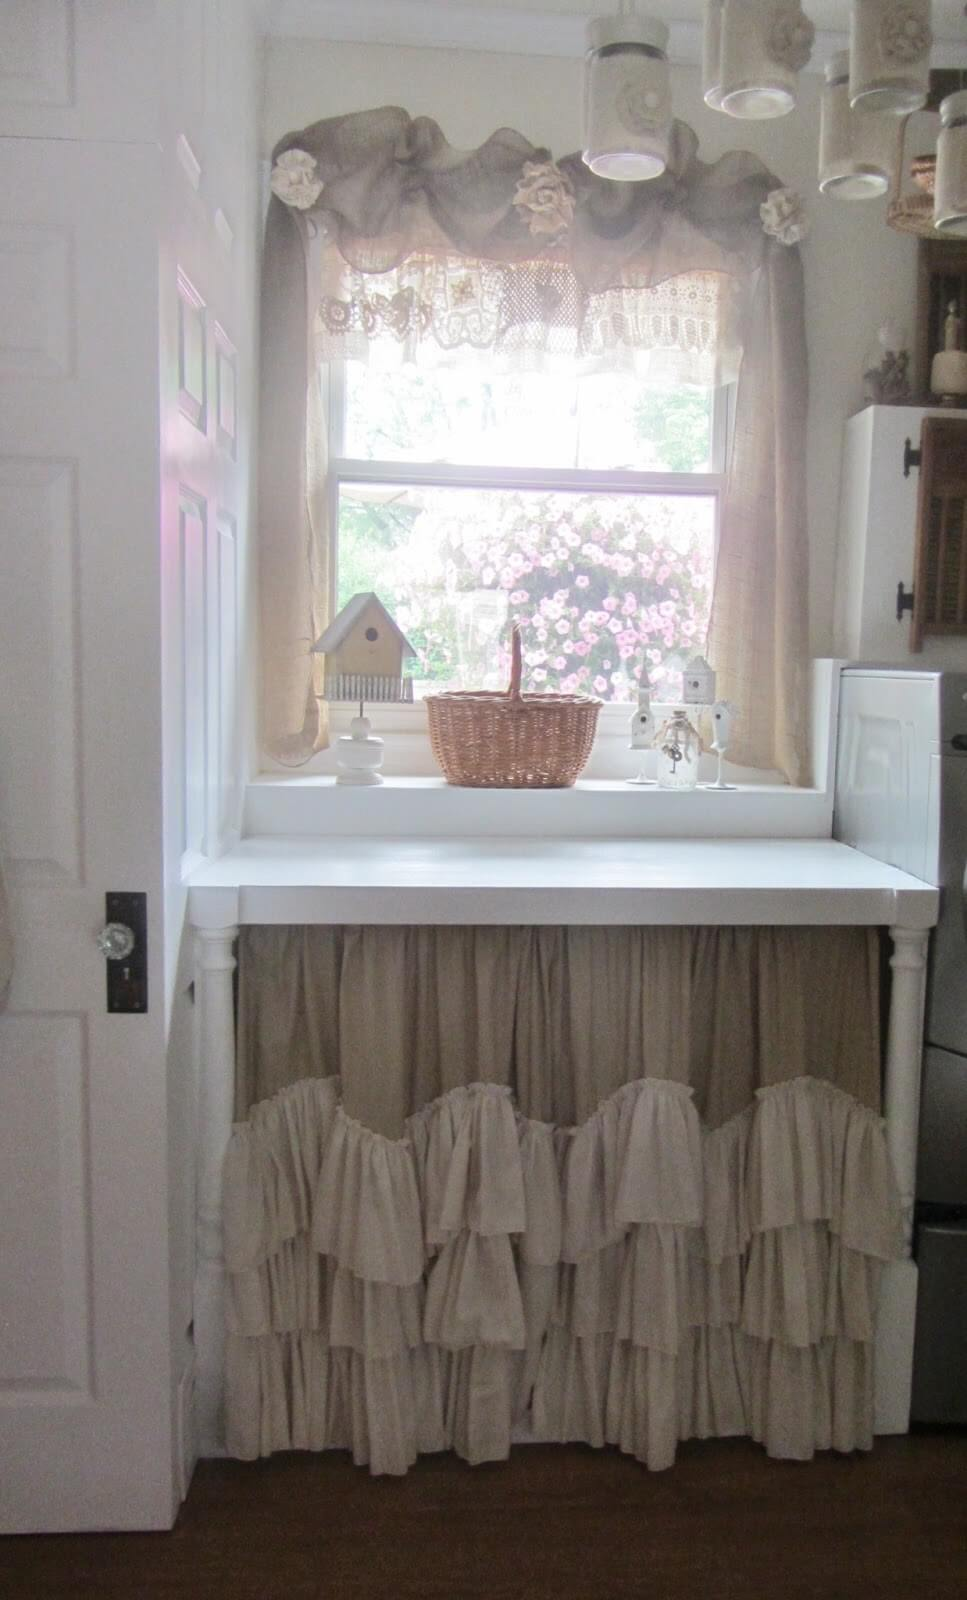 25 Utterly Beautiful Diy Underthesink Cabinet And Window